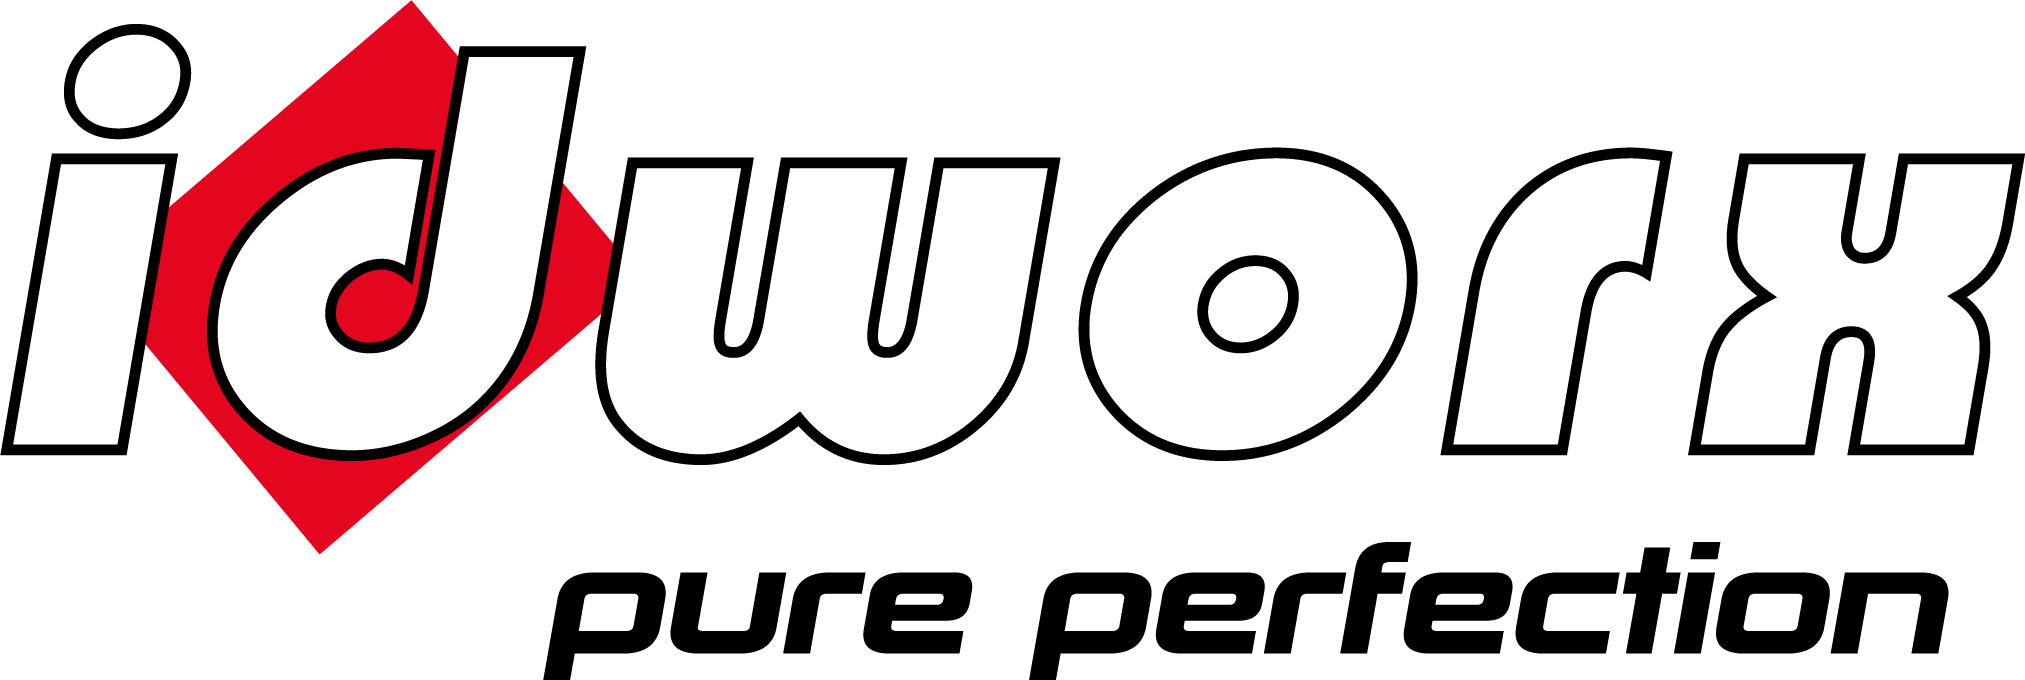 idworx_pure-perfection.jpg